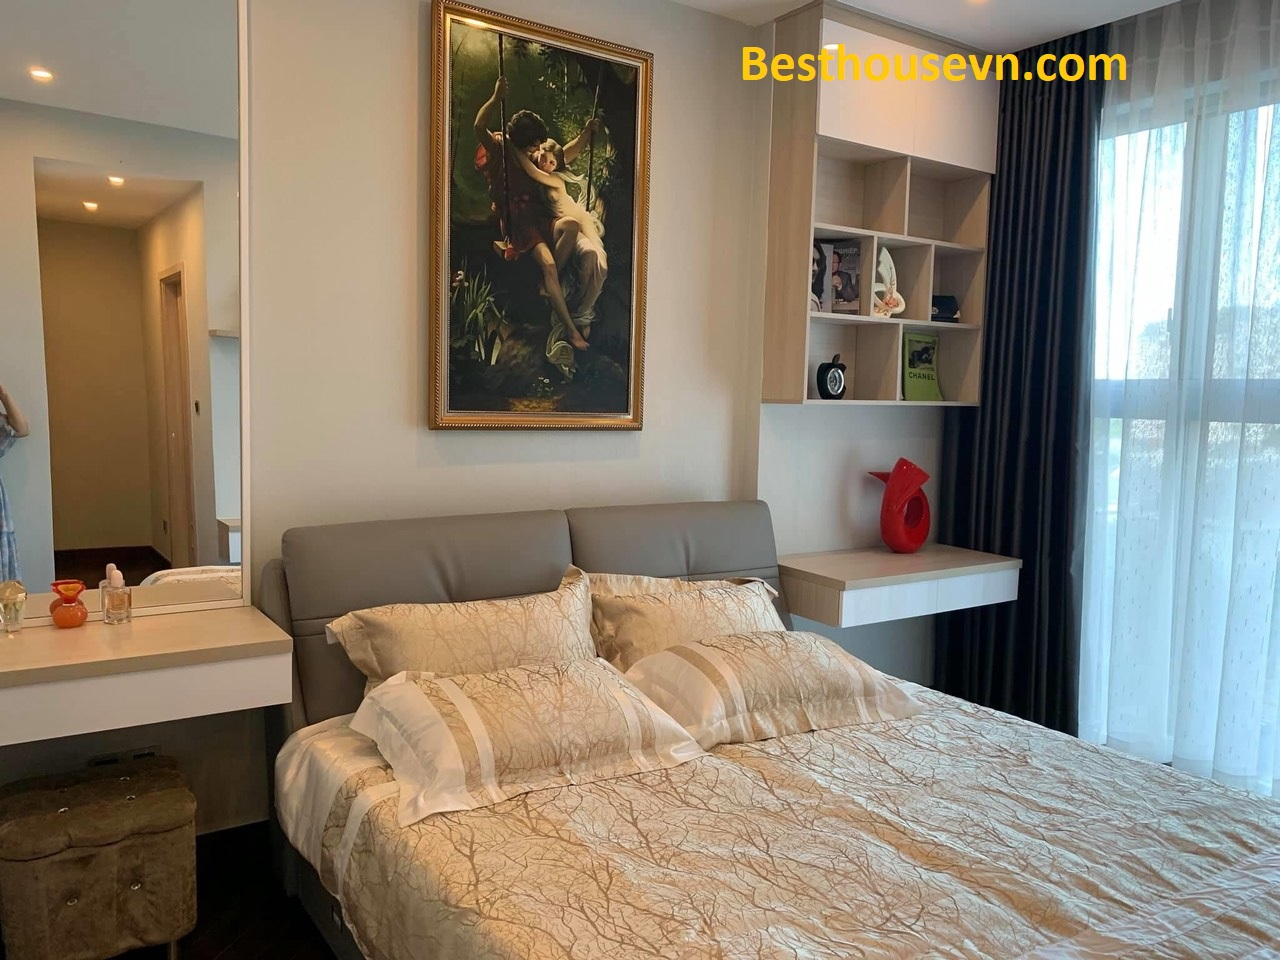 Mitown-89sqm-apartment-for-rent-in-phu-my-hung-district-7-hcmc-7